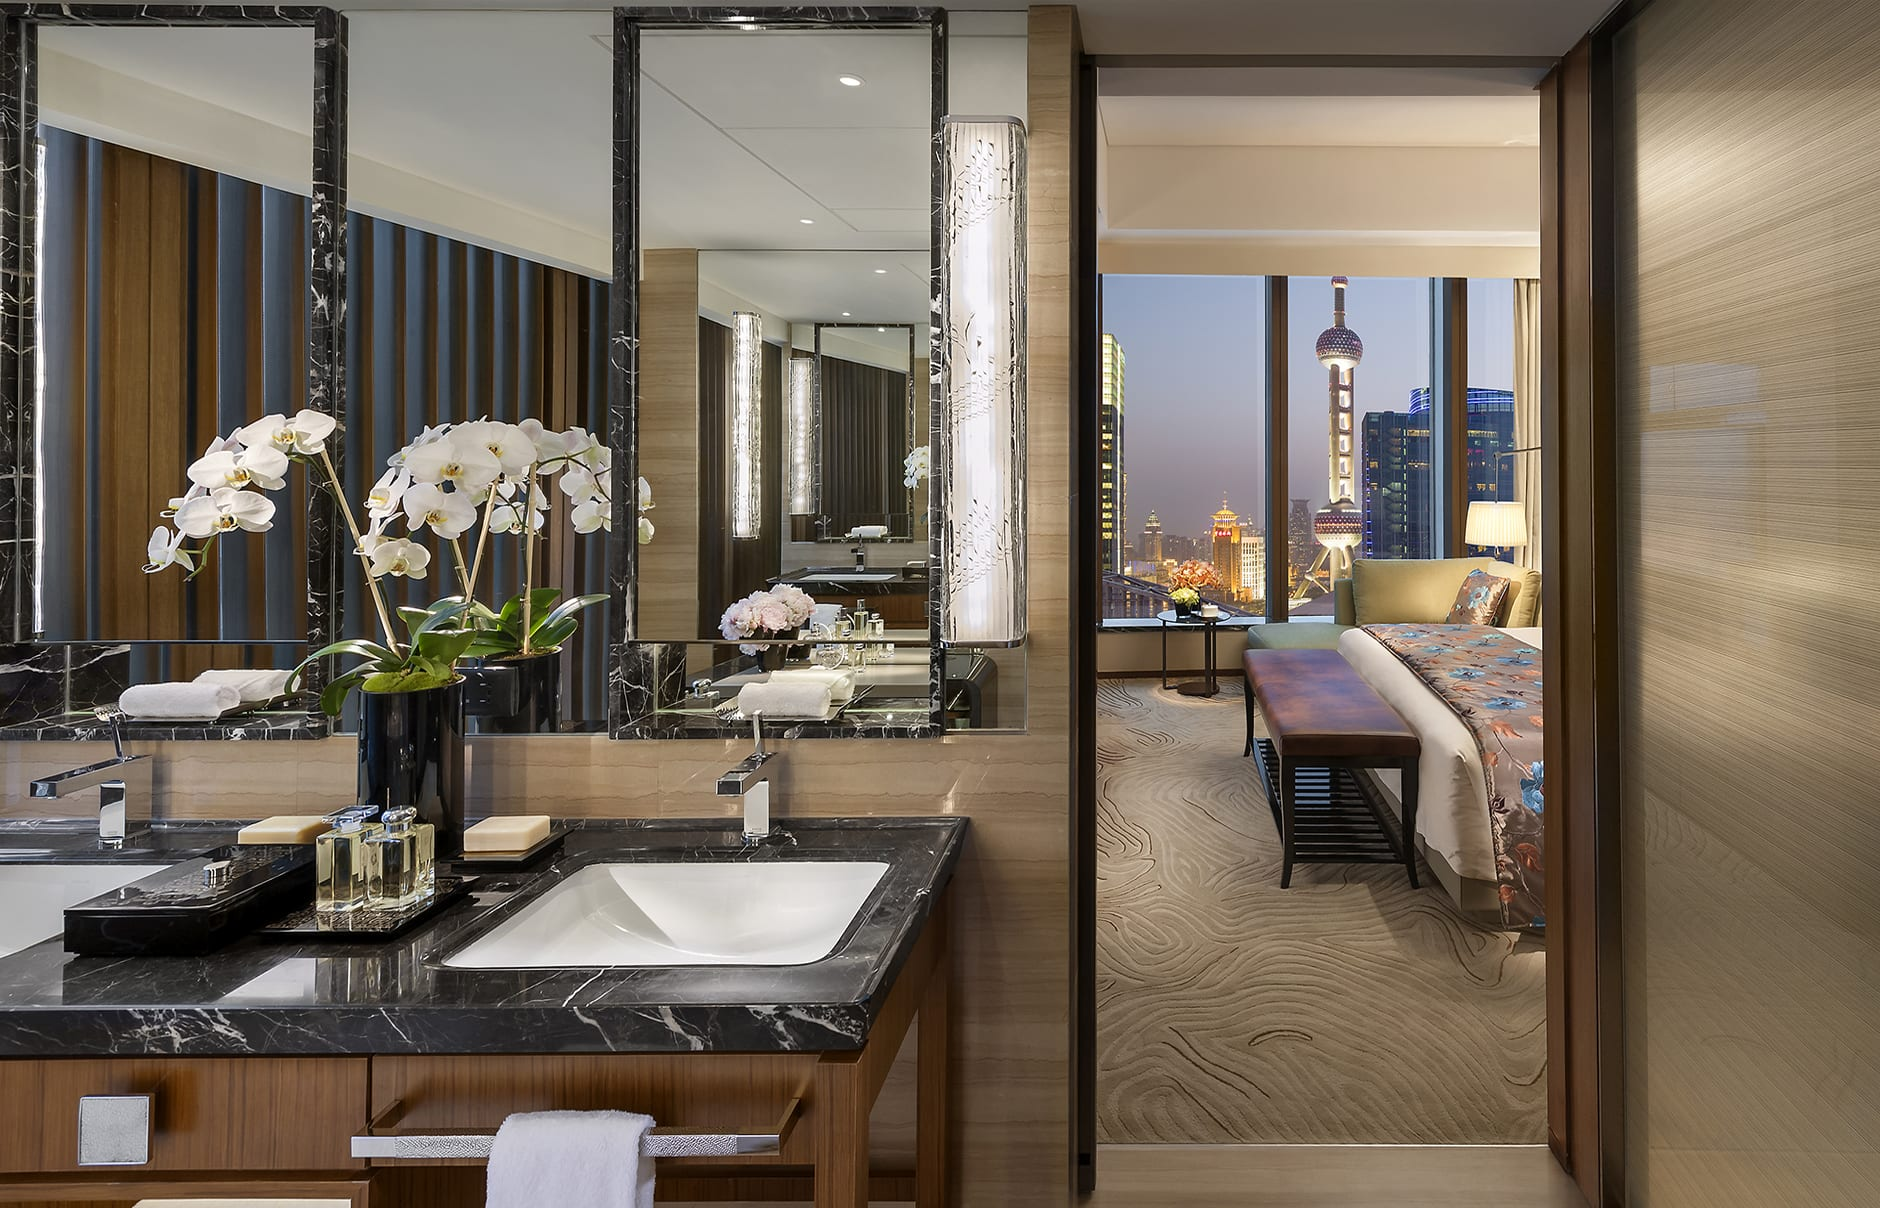 Mandarin Oriental Pudong, Shanghai, China. Luxury Hotel Review by TravelPlusStyle. Photo © Mandarin Oriental